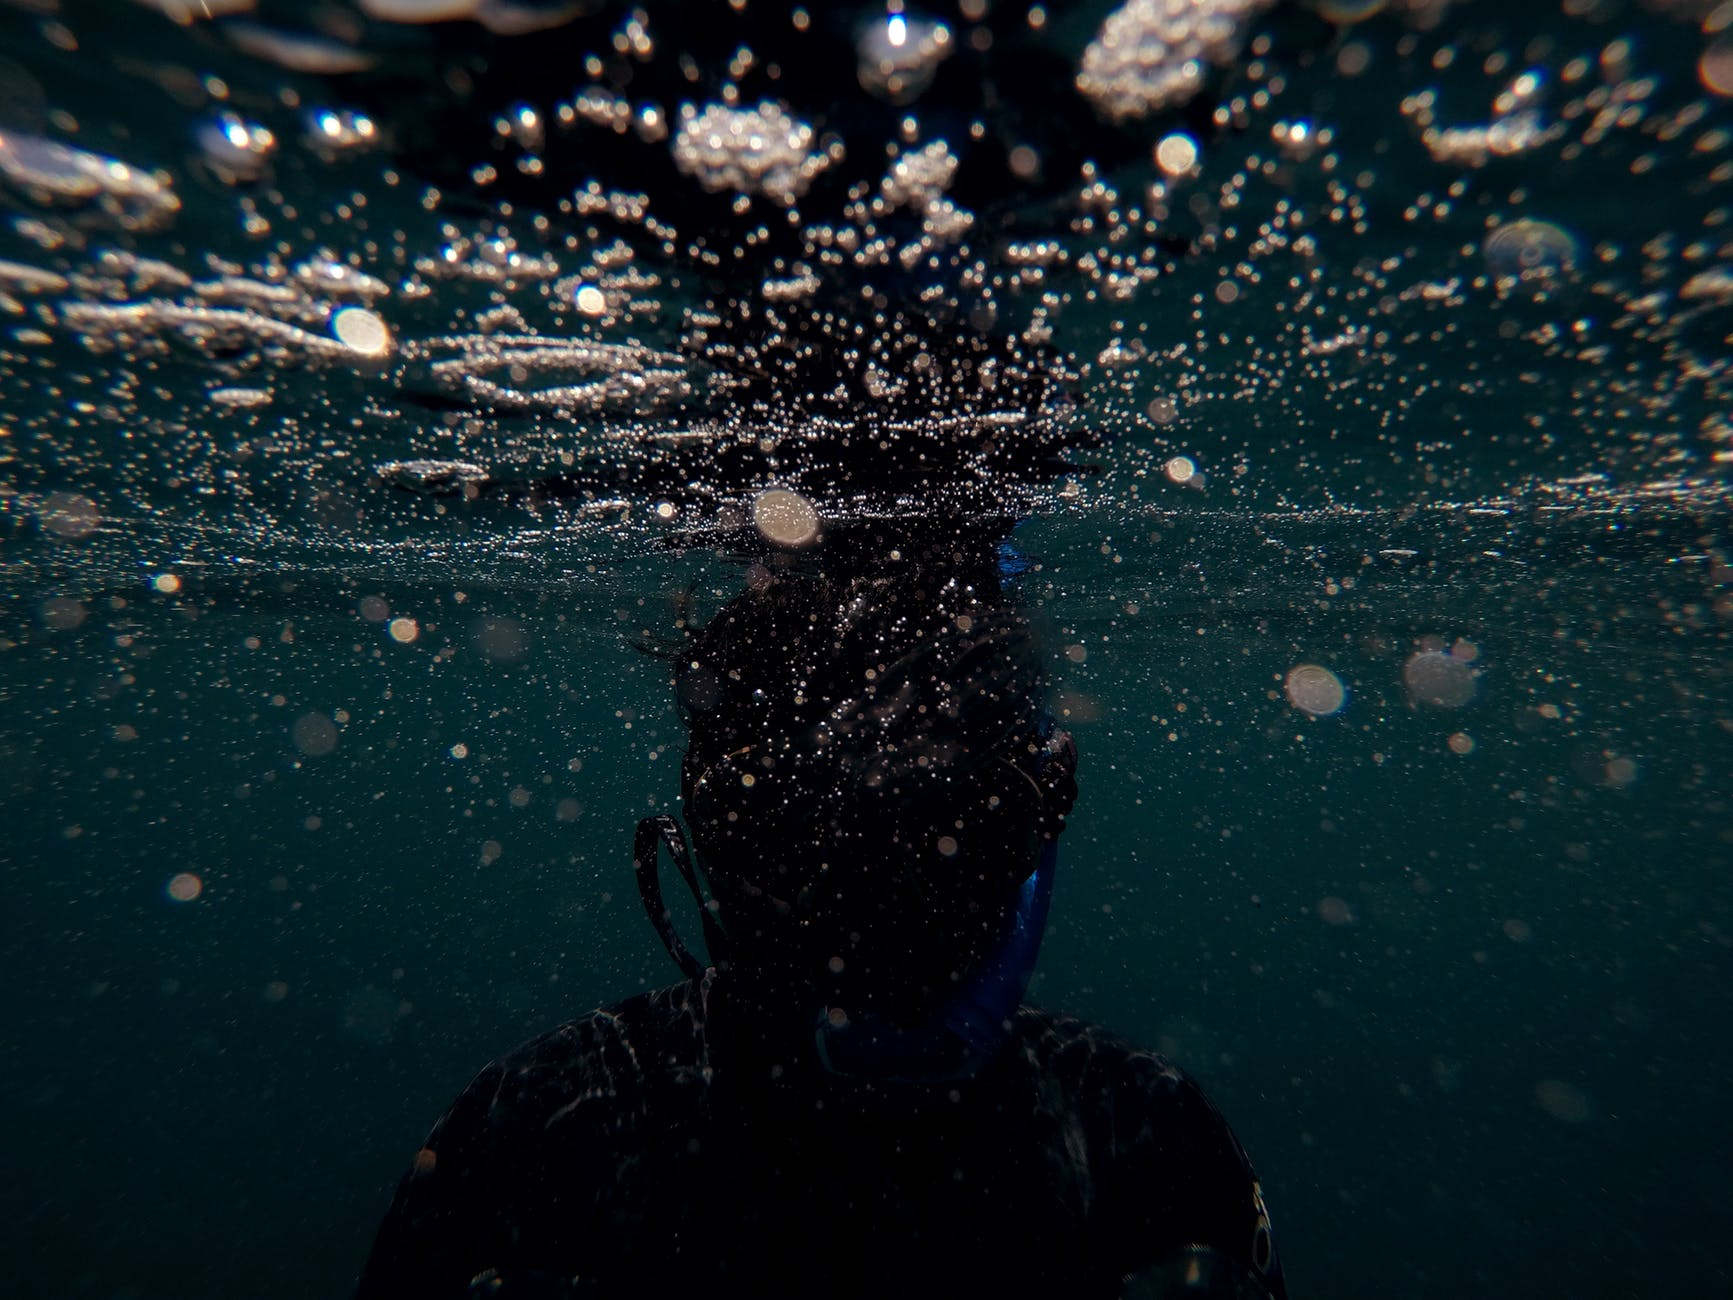 a person underwater